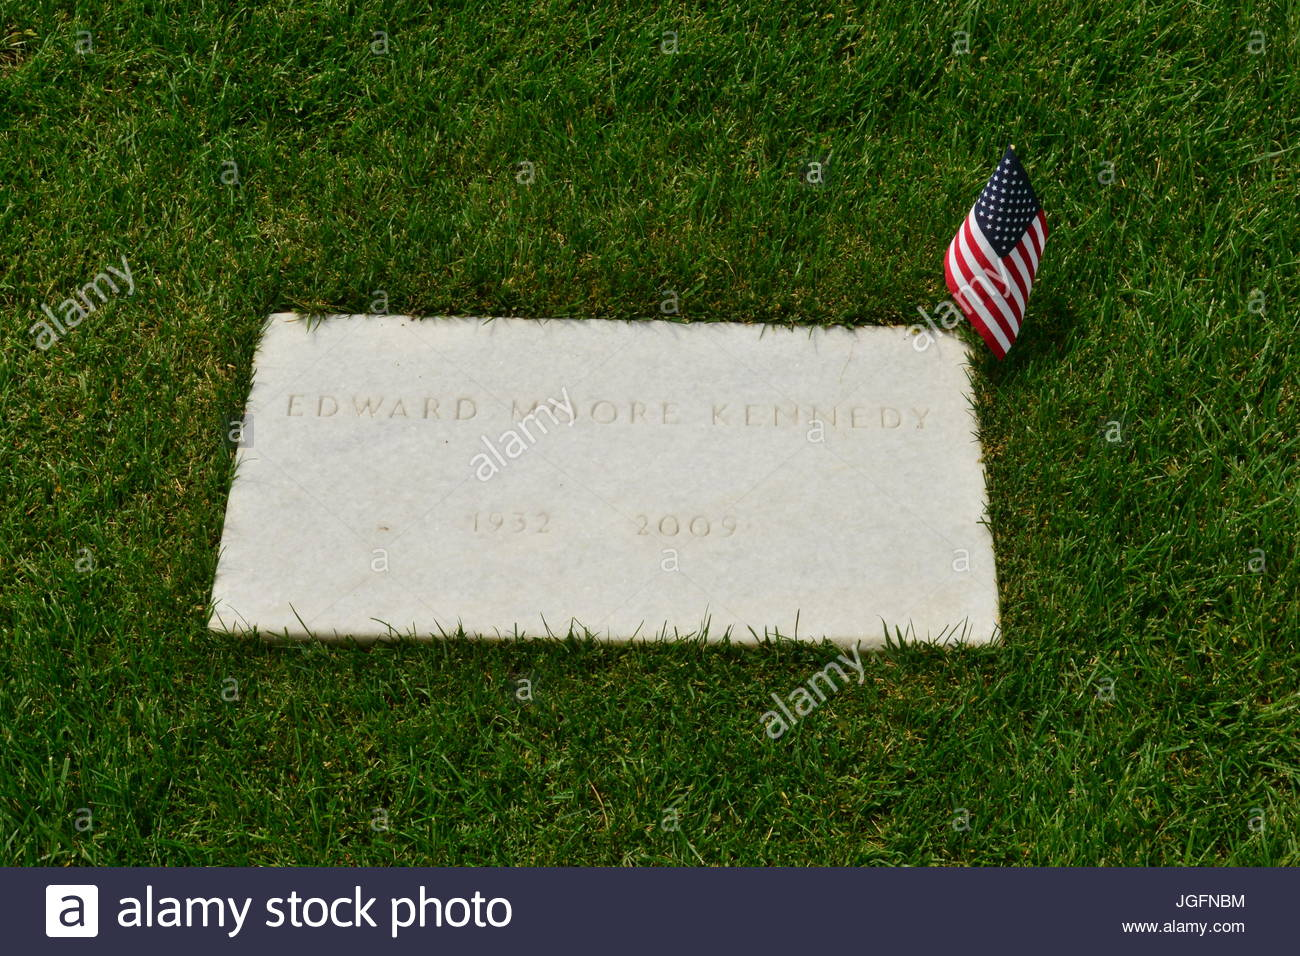 Edward M. Kennedy's grave at Arlington National Cemetery. - Stock Image